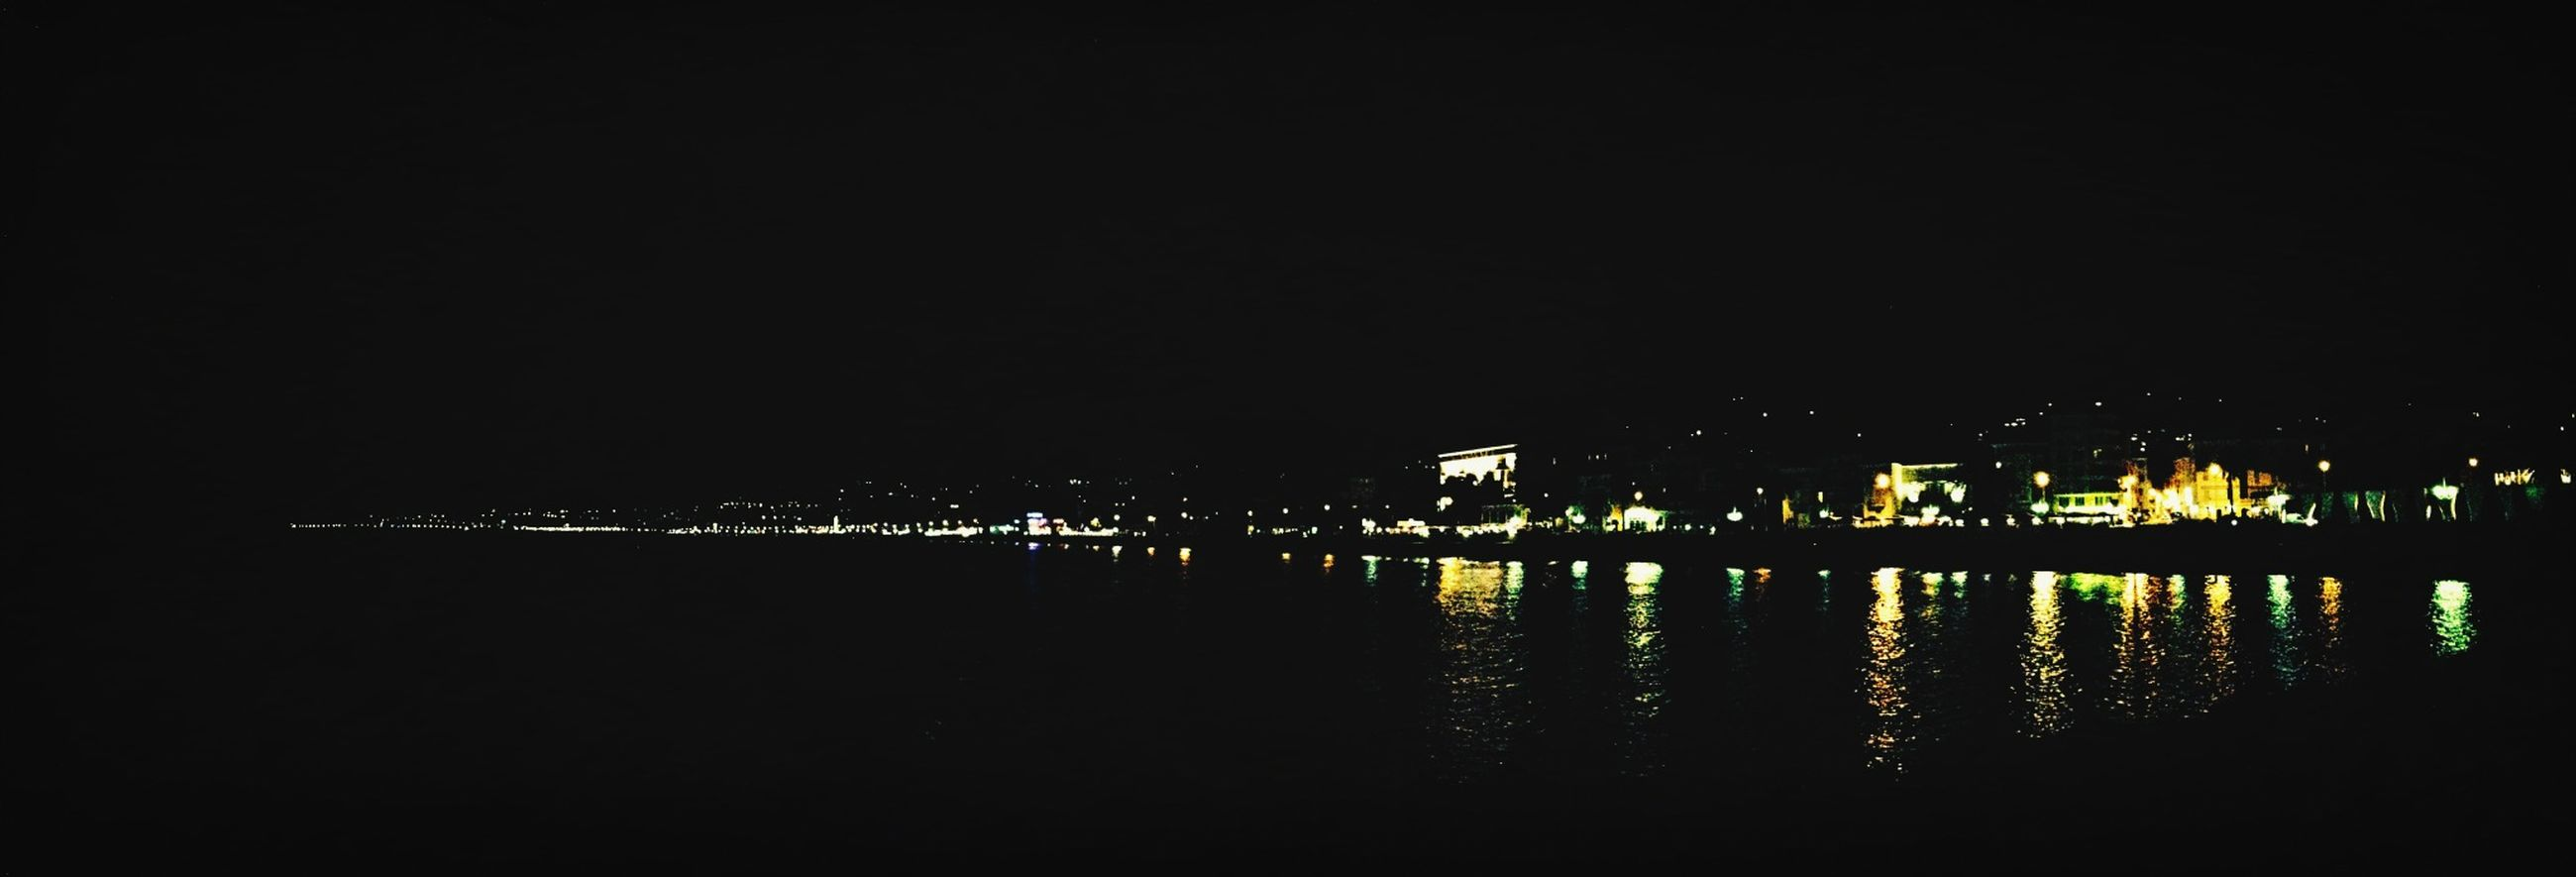 water, night, illuminated, reflection, waterfront, lake, copy space, river, tranquility, tranquil scene, clear sky, sea, pier, silhouette, nature, scenics, dark, outdoors, sky, built structure